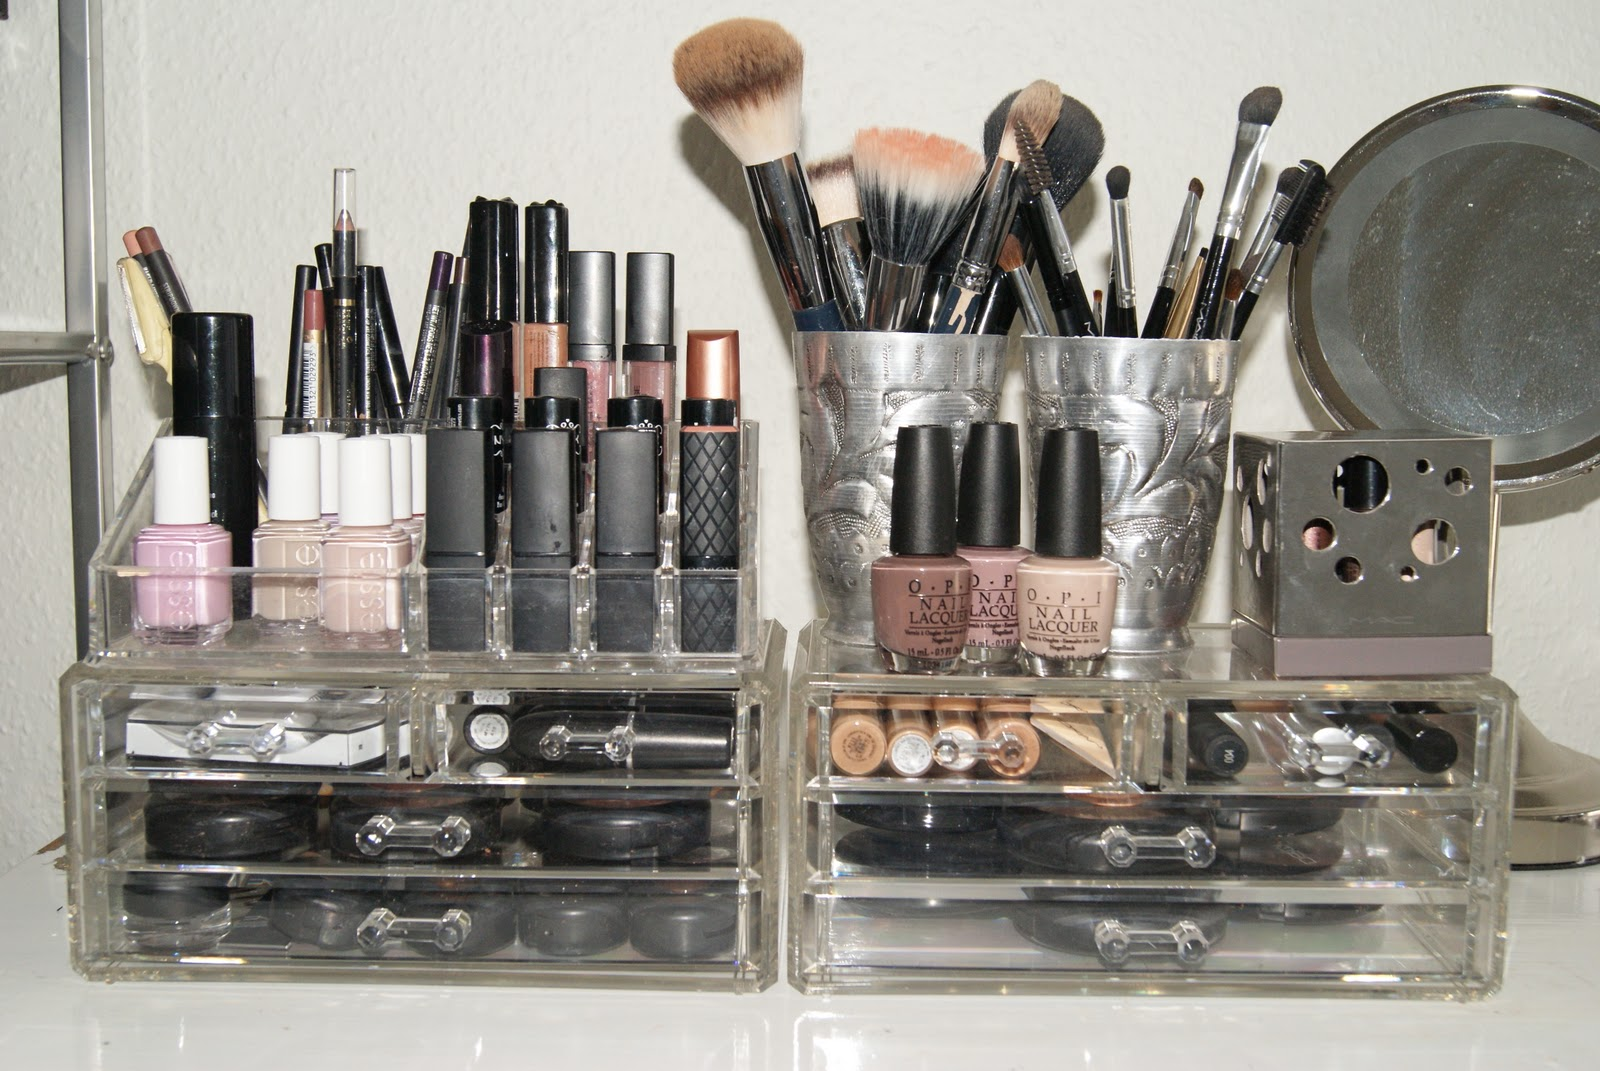 Makeup Storage Containers Oh Just One More Makeup Storage